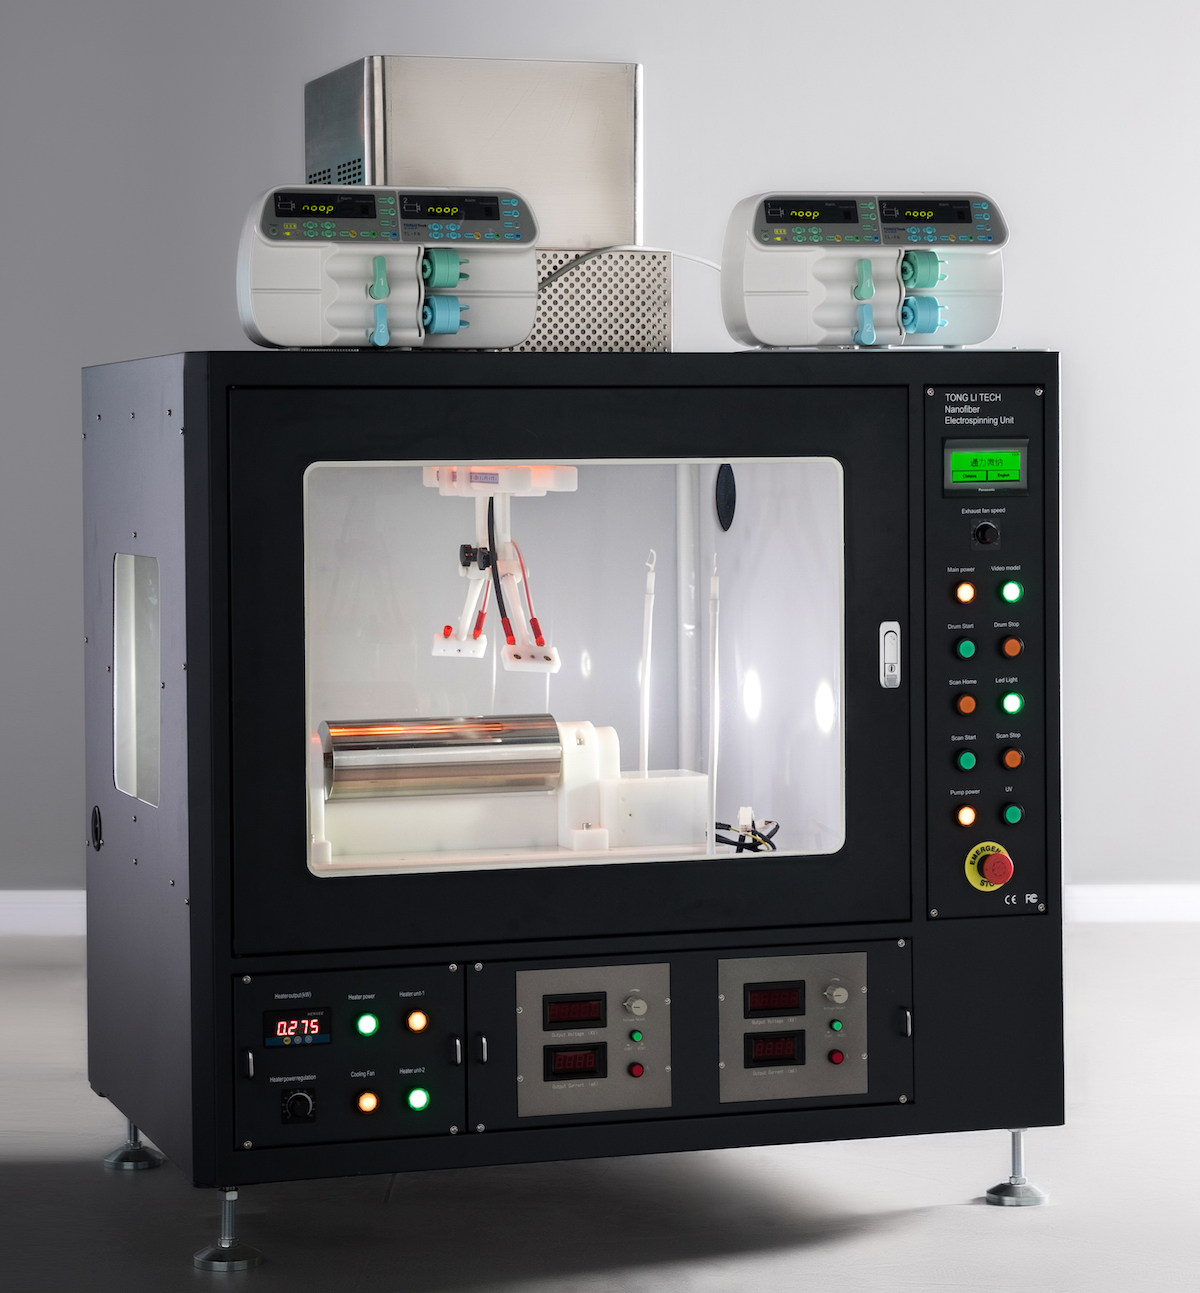 Robotic electrospinning equipment